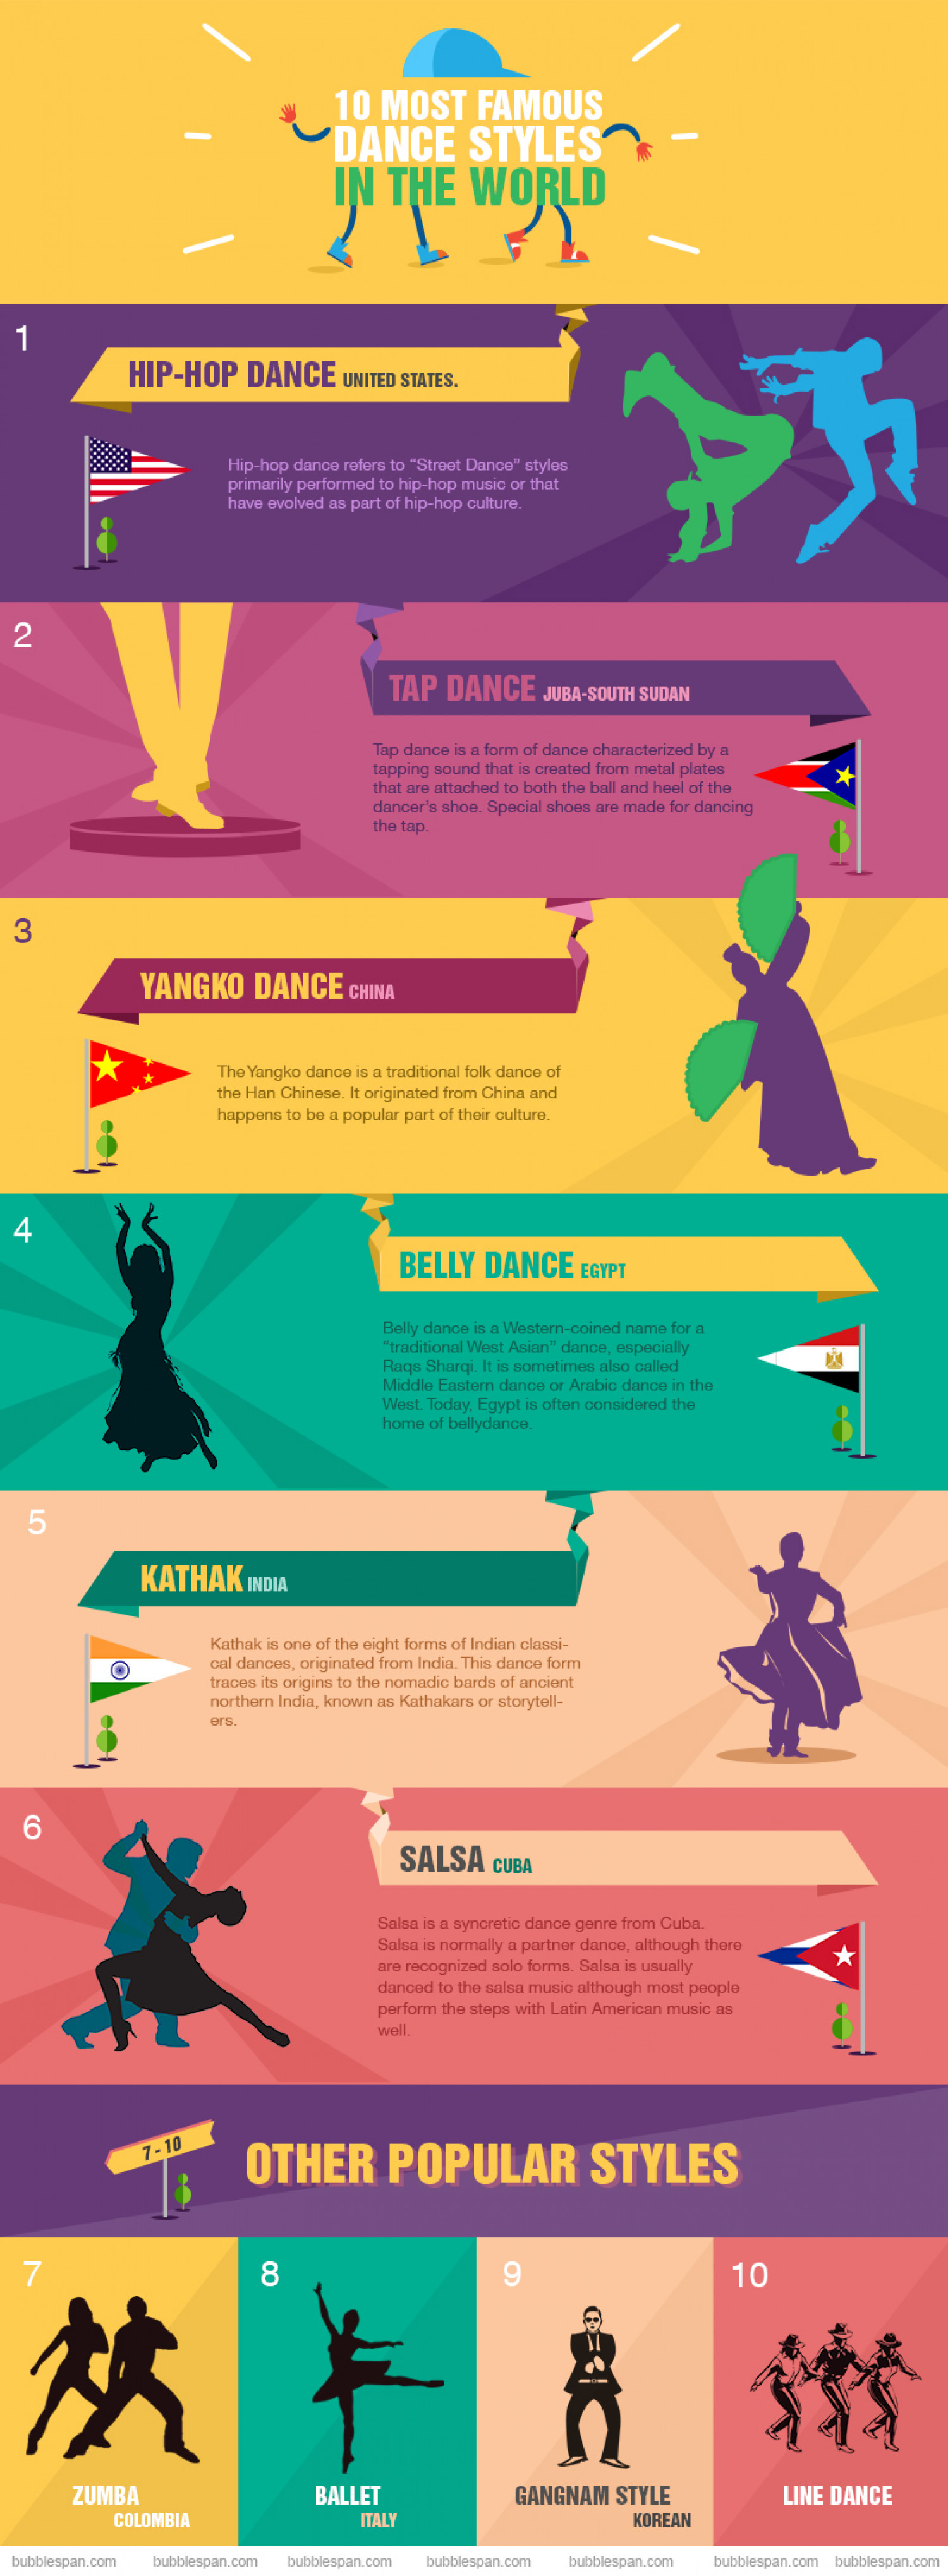 an analysis of the different styles of dance This list of 105 dances won't actually turn you into a master of the ballroom, but it may help you recognize and understand the differences between certain dances dance styles vary immensely both by time period and by region, so please let me know if you know of other styles that i haven't listed.